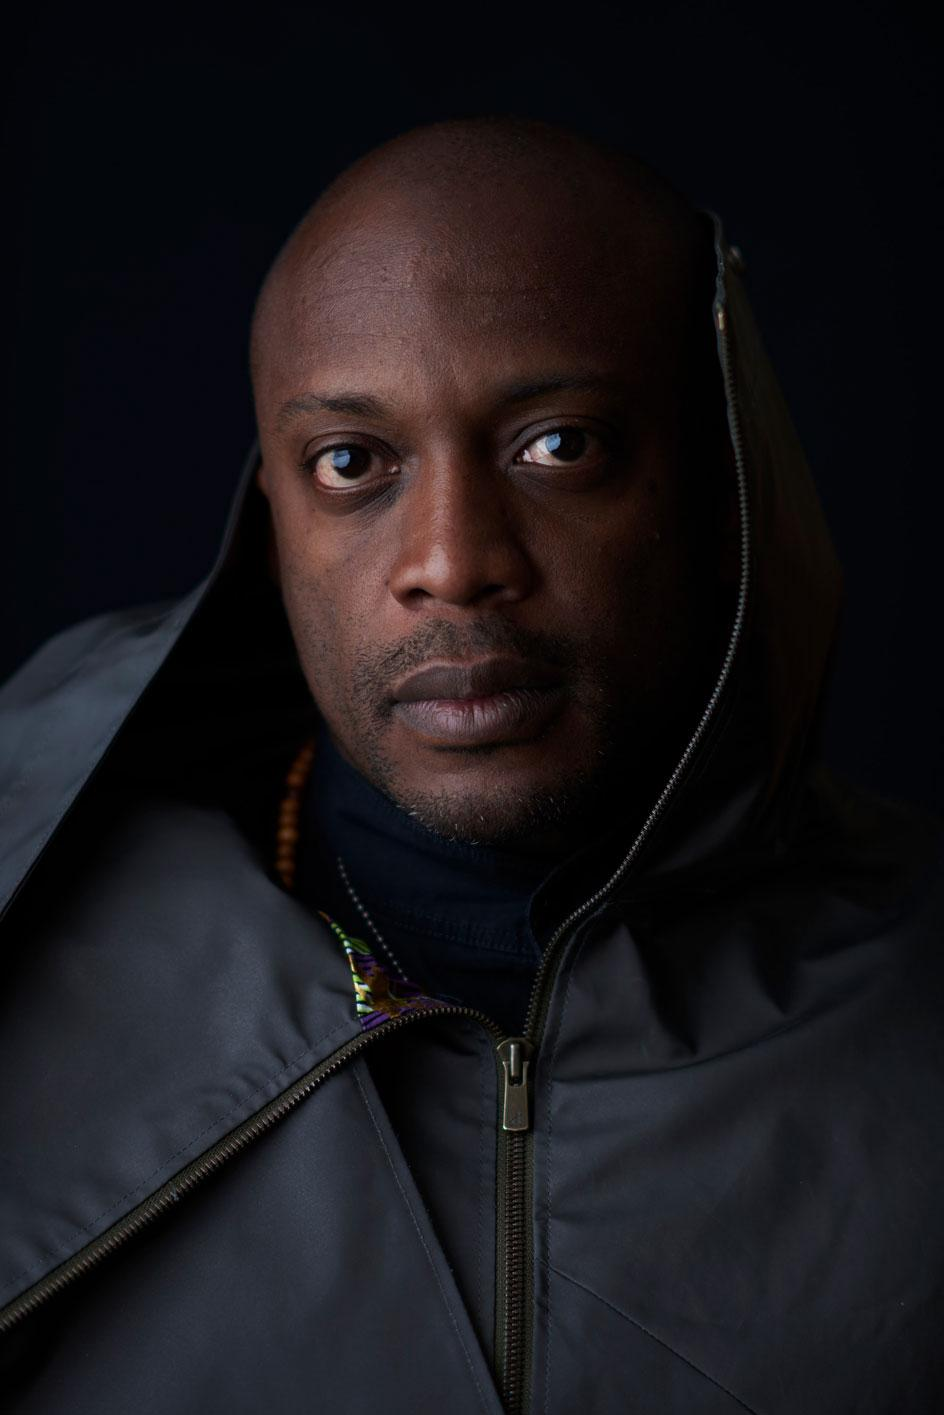 Portrait of Hank Willis Thomas for the Wide Awakes collective - photography by Jeff Vespa